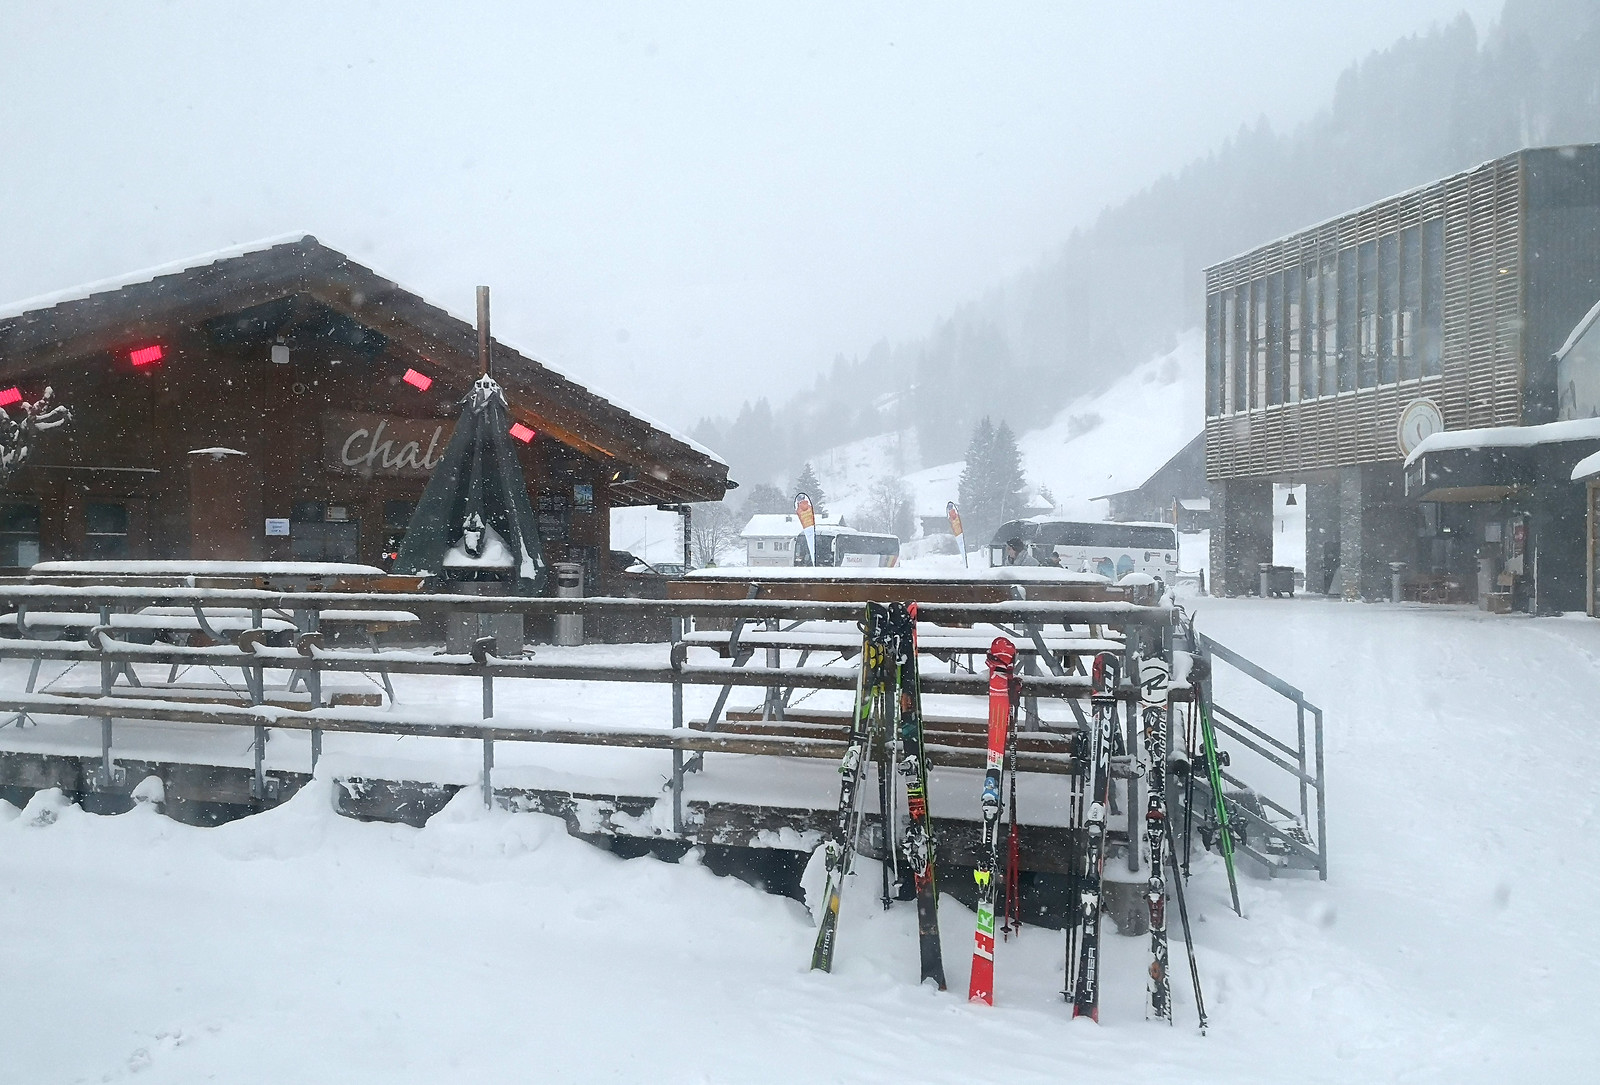 Chalet lodge at the base station